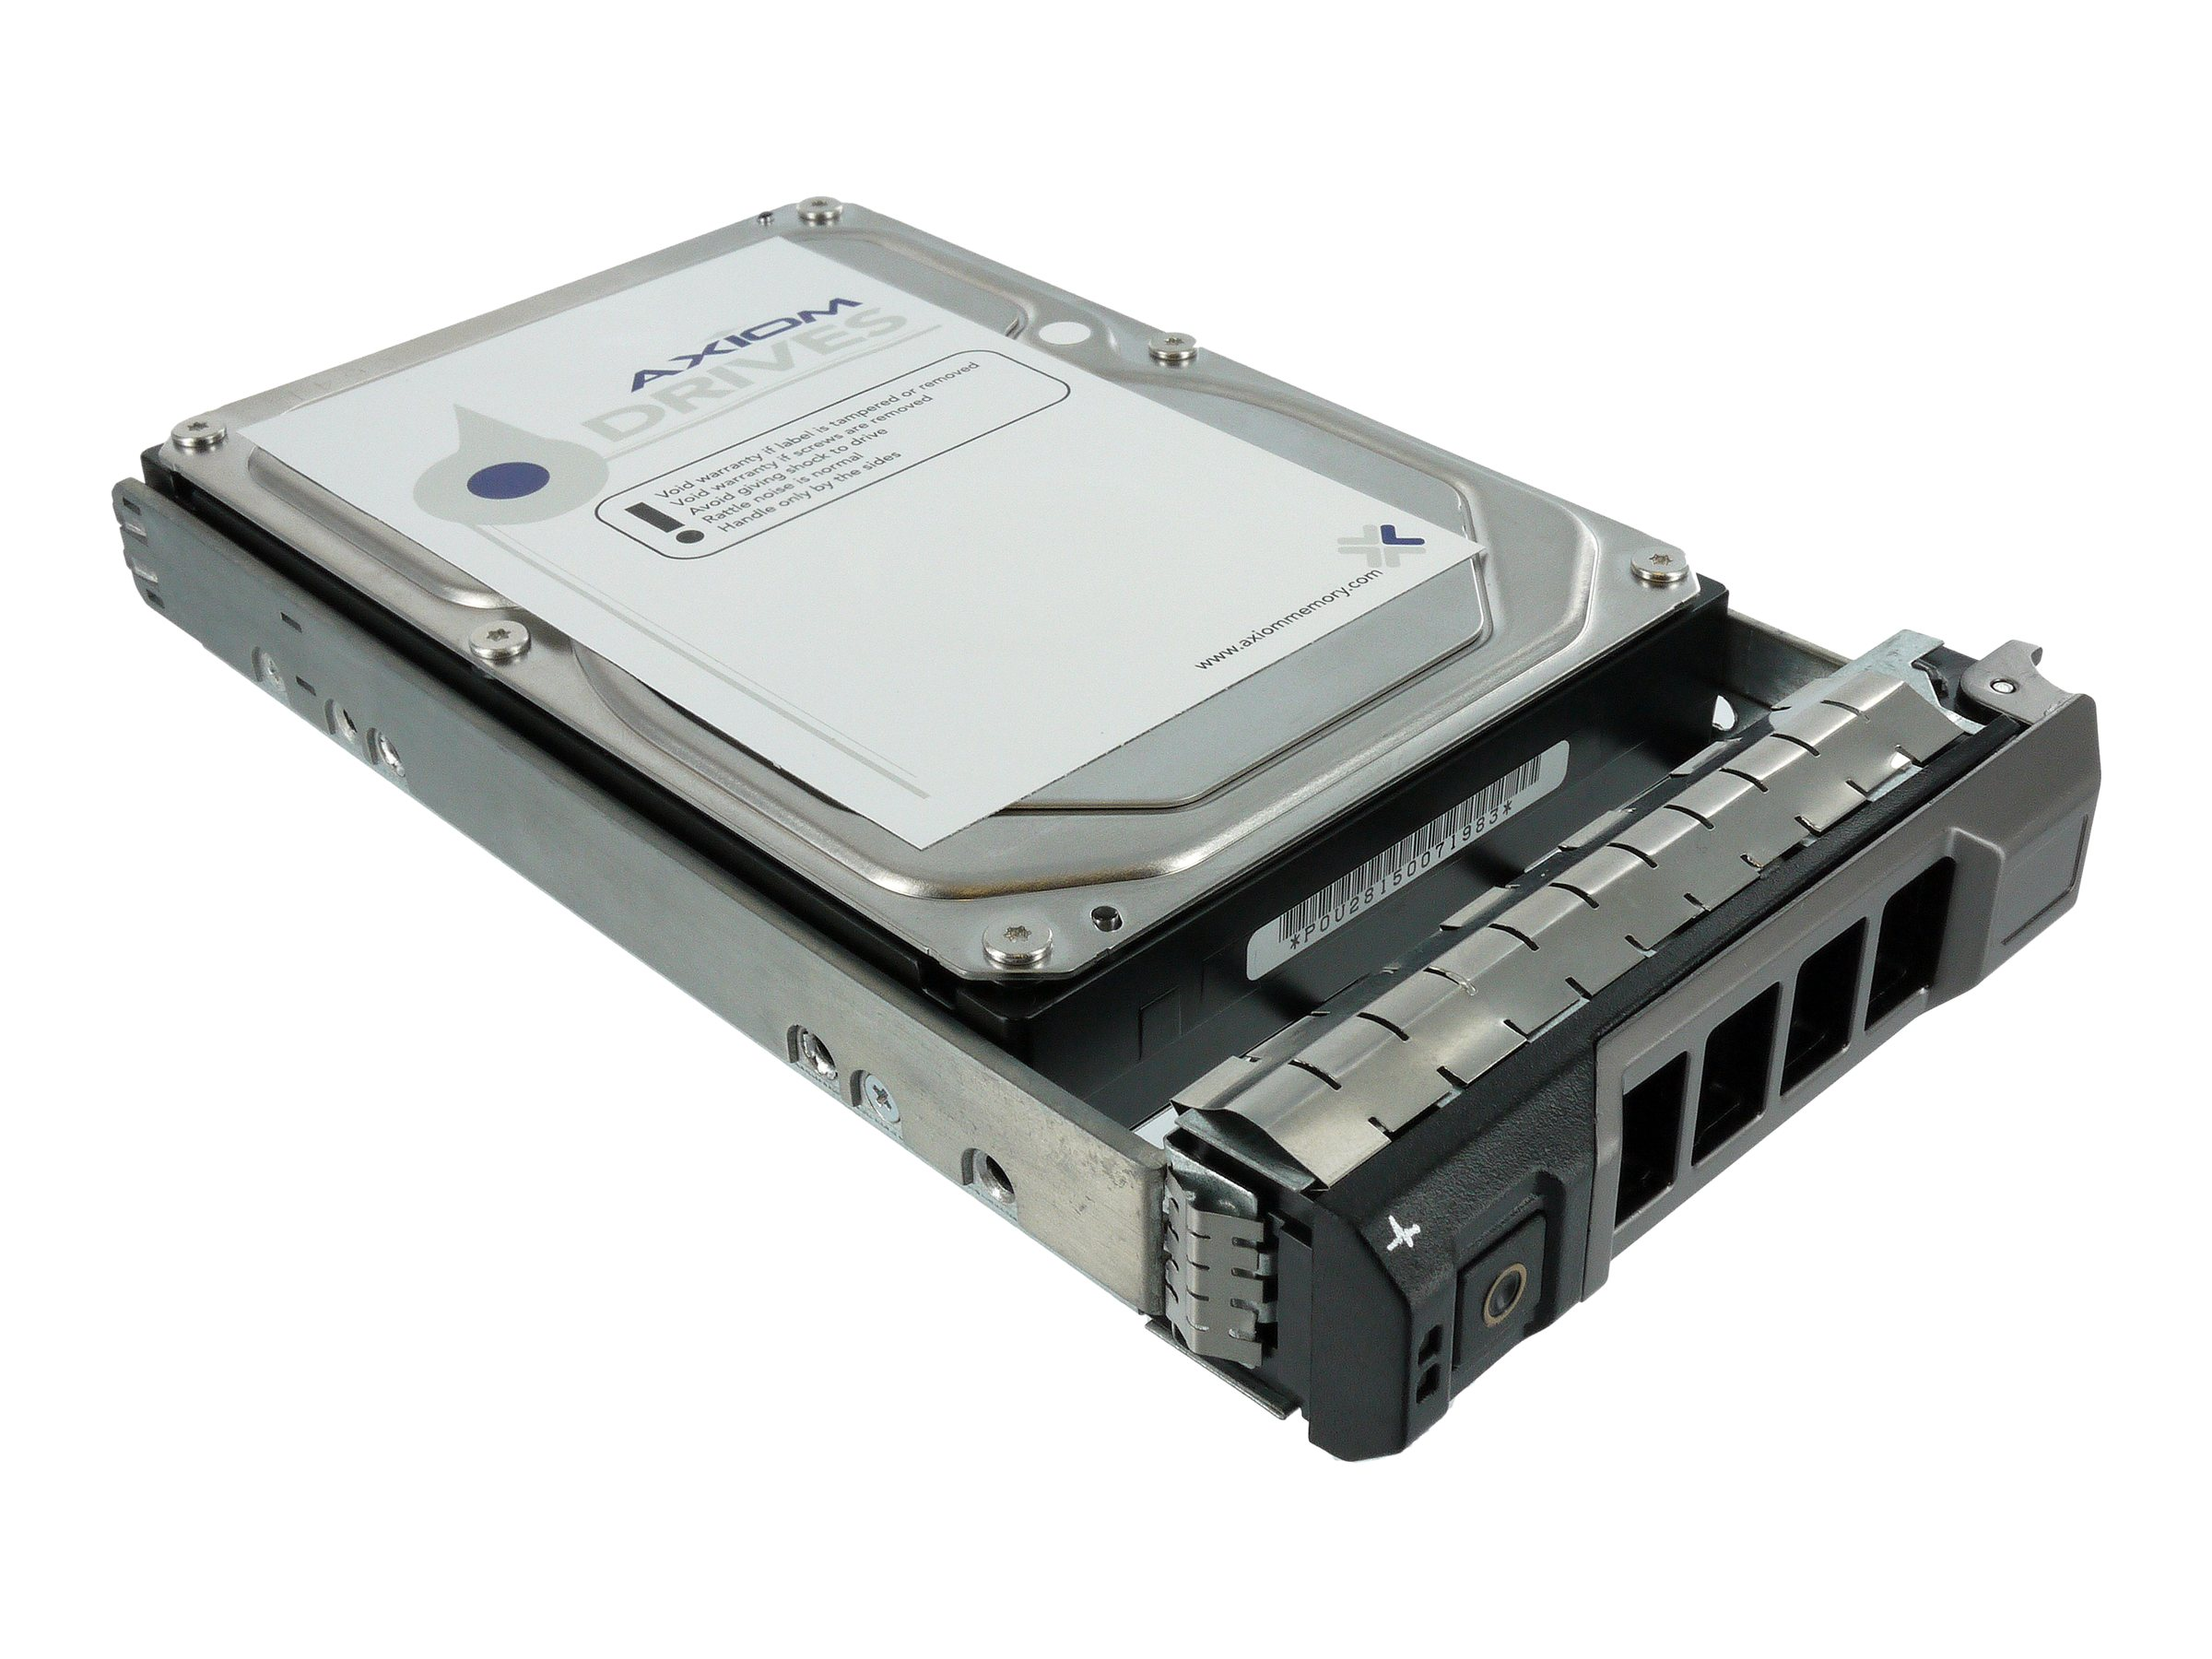 Axiom 2TB SATA 6Gb s 7.2K RPM 3.5 Hot Swap Hard Drive Kit for Dell PowerEdge R230, R310, R320, R330, R410